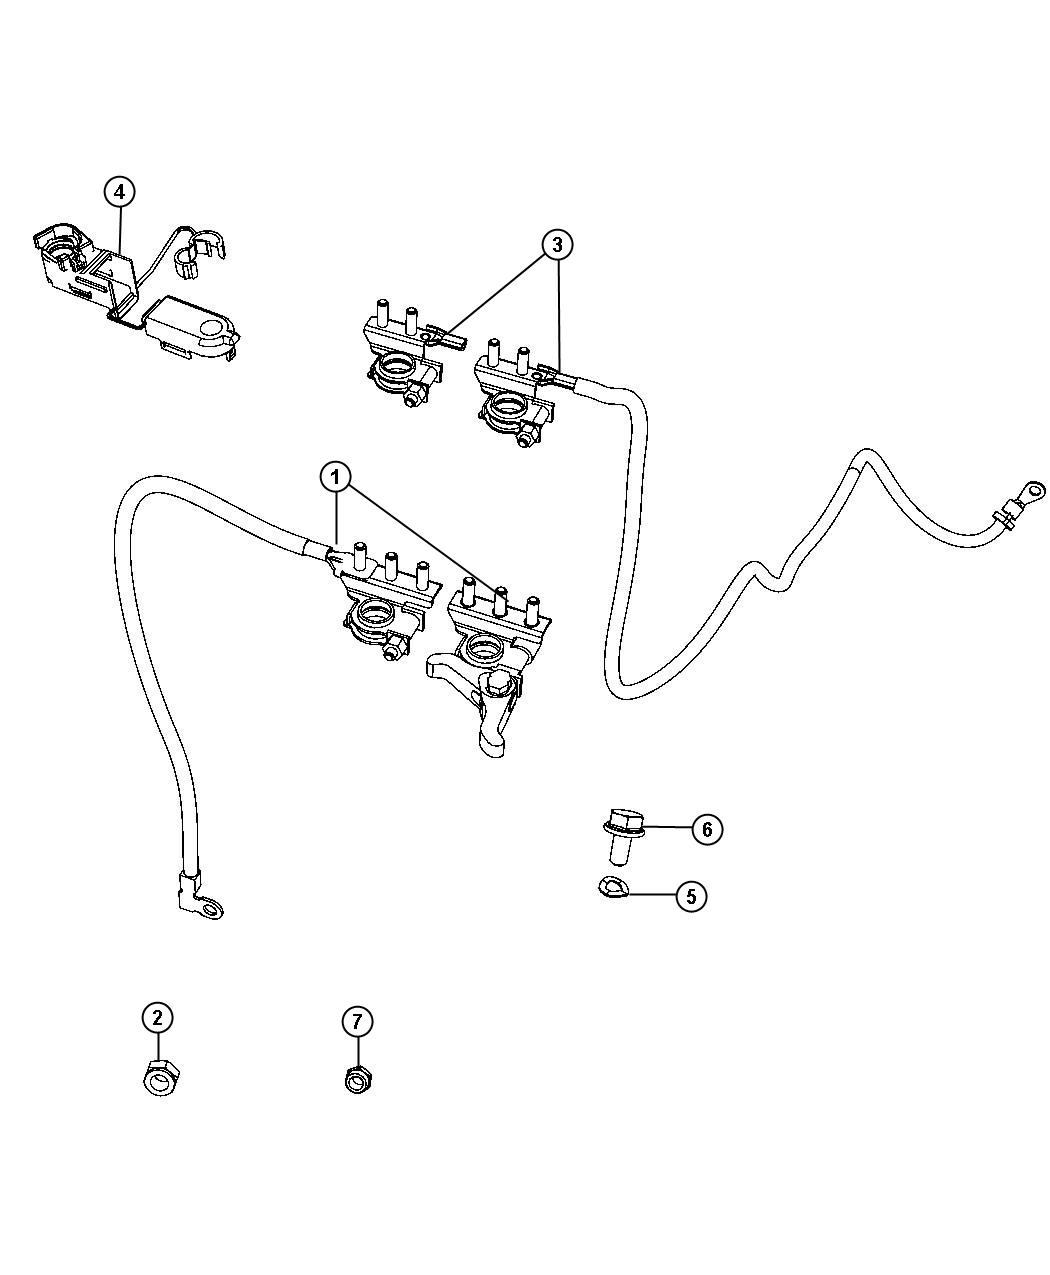 Fiat 500x Wiring Battery Positive Used For Alternator